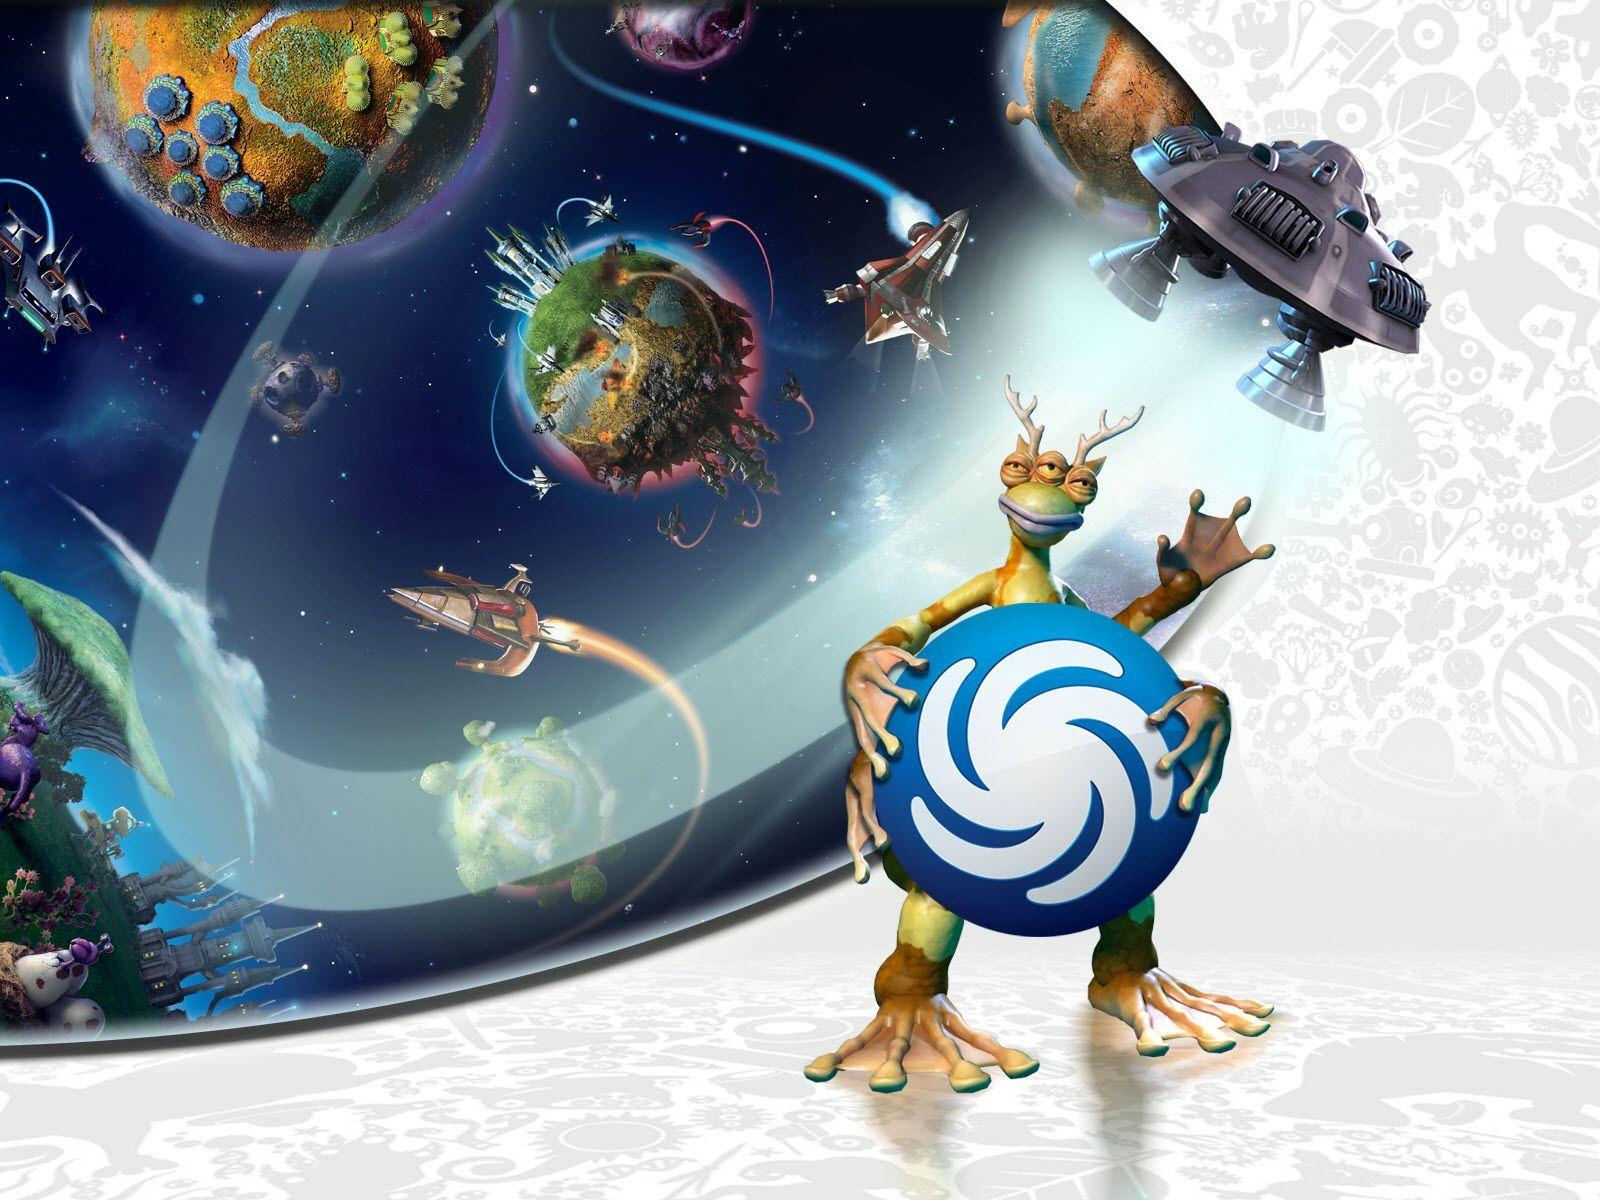 Spore Wallpapers 1600x1200